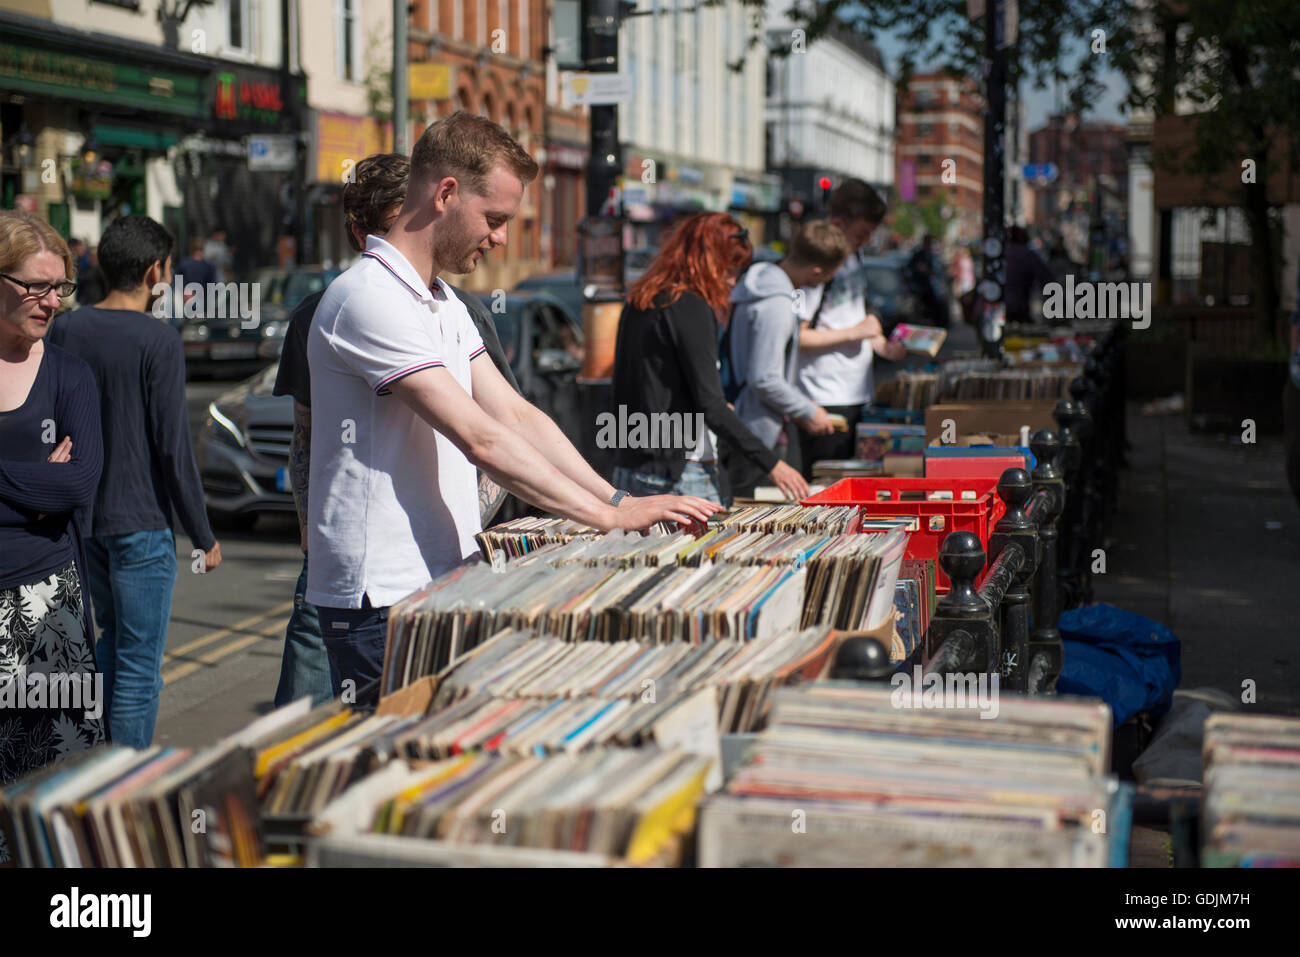 A young man sifts through 2nd hand records for sale at a stall on Thomas Street in the Northern Quarter area of - Stock Image